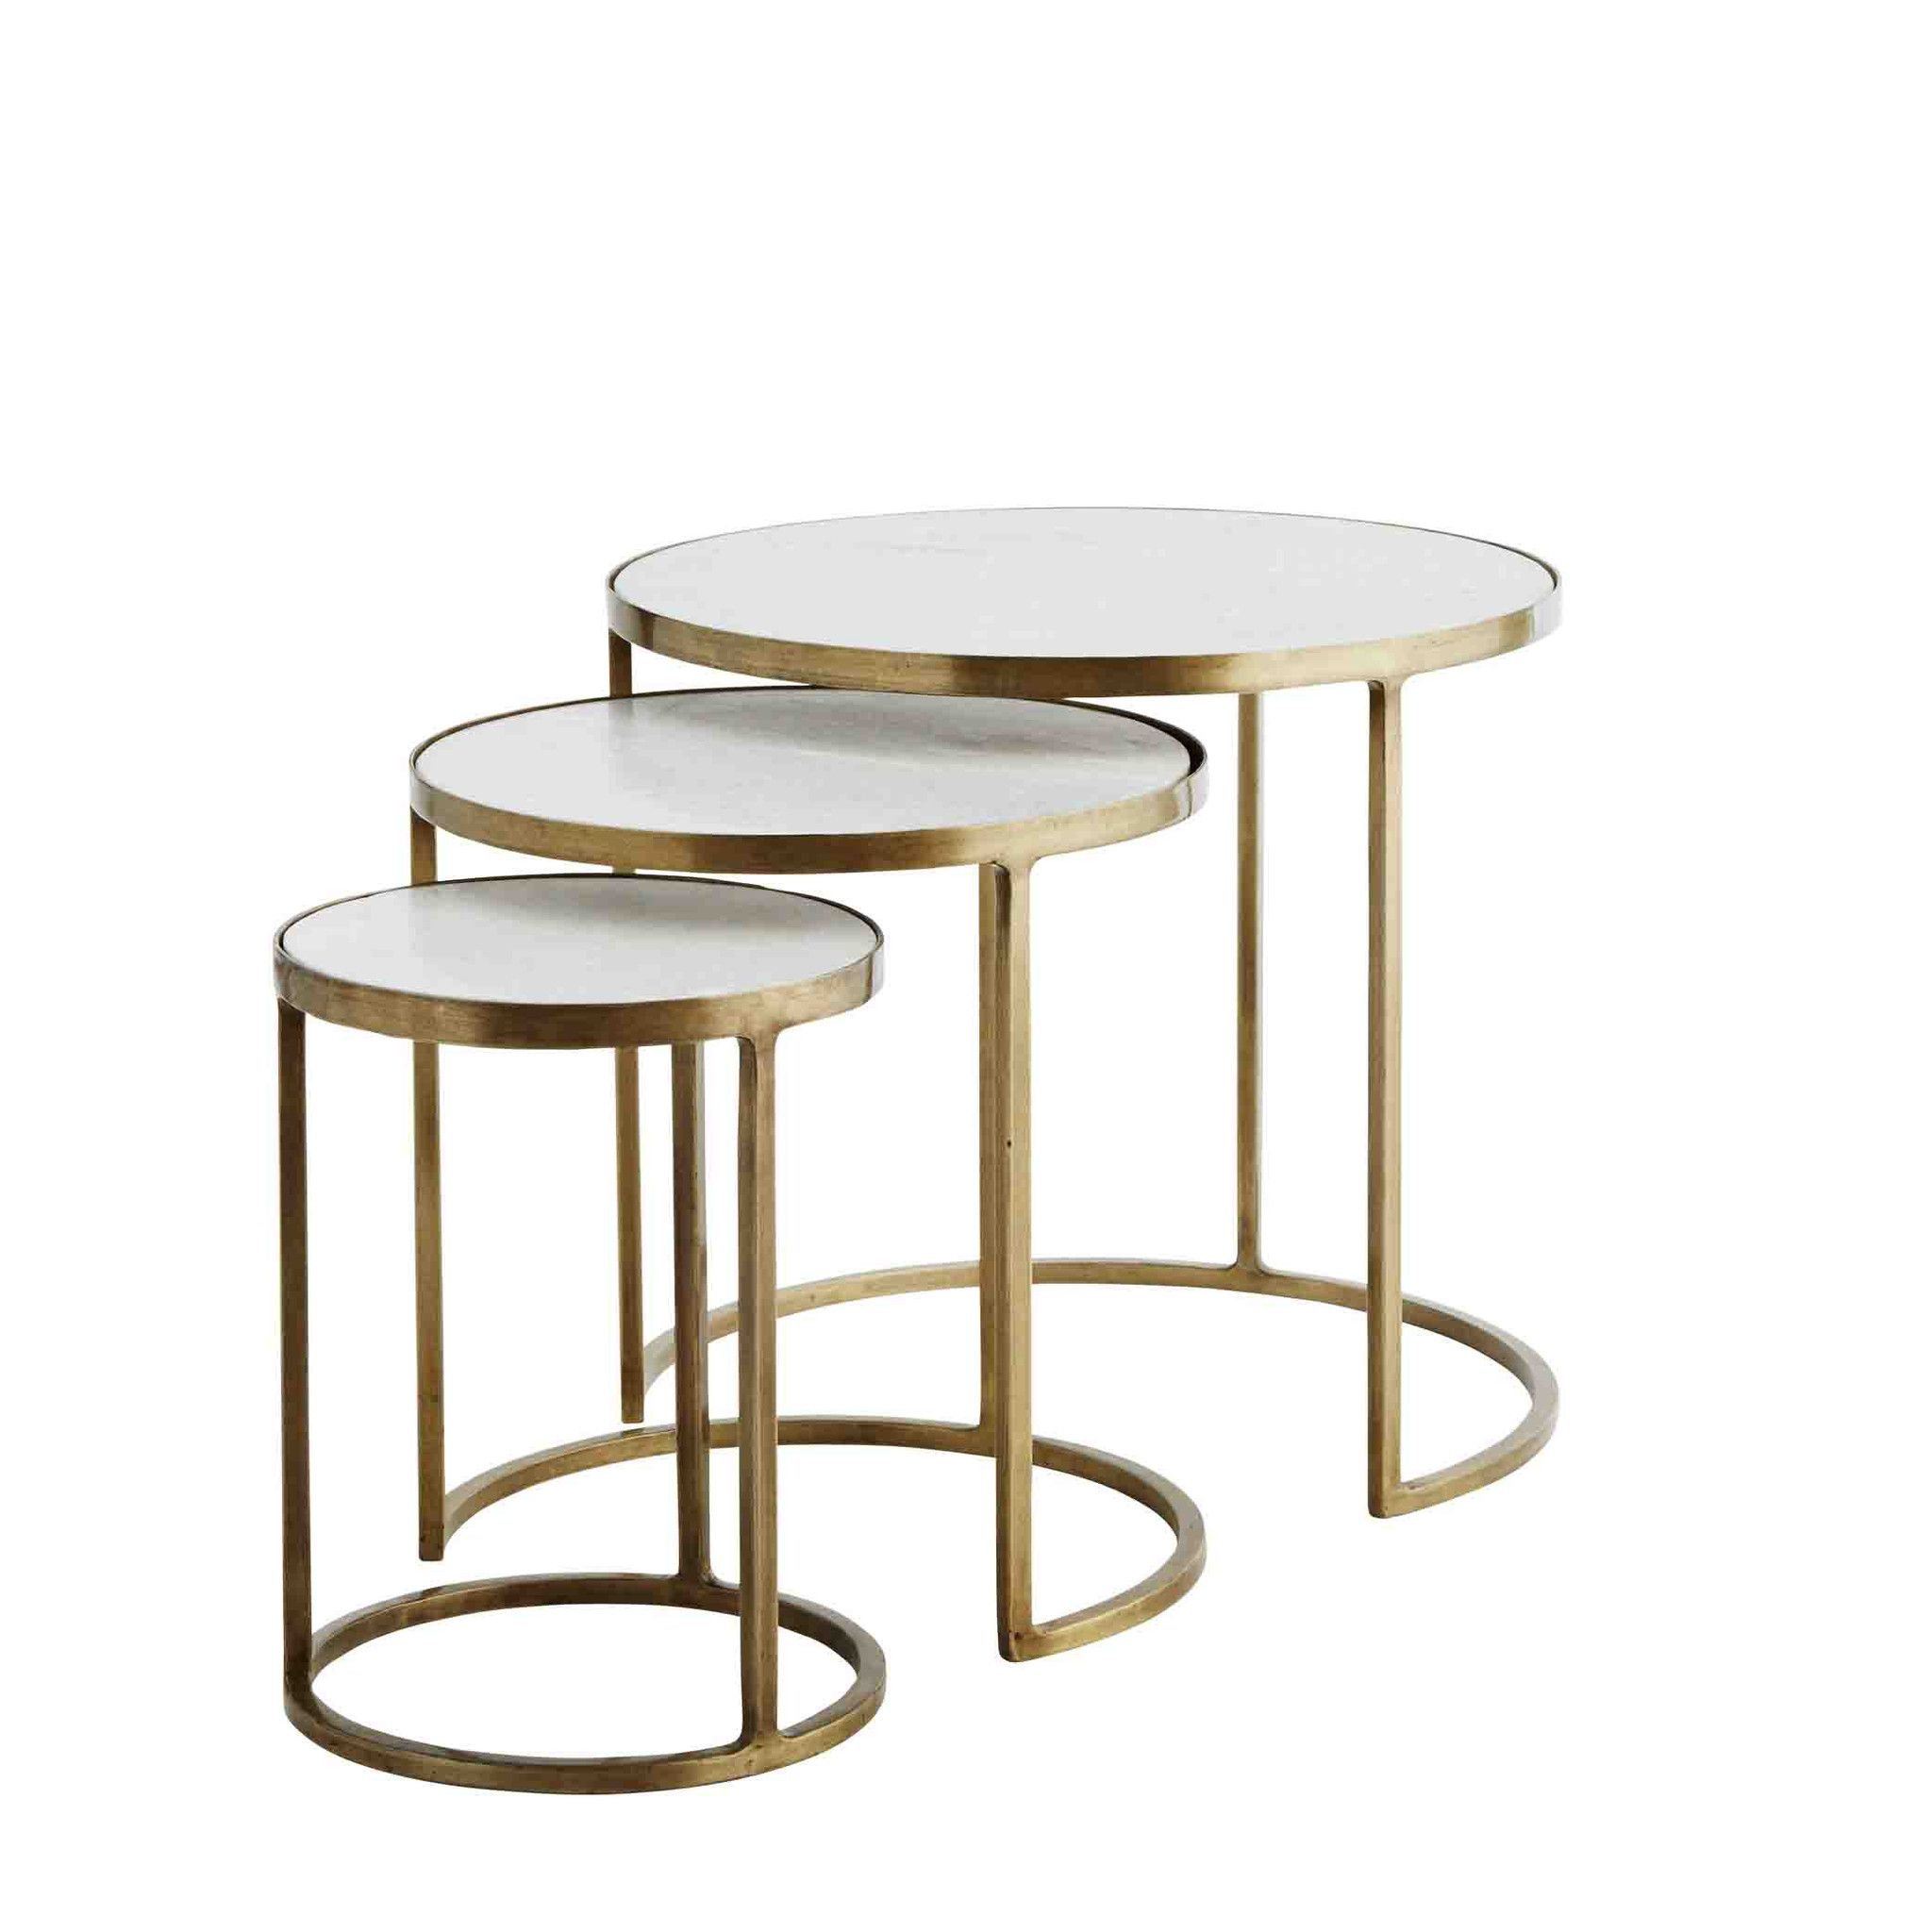 Brass And Marble Round Nest Of 3 Tables Kahve Masasi Ic Mekan Fikirleri Crate And Barrel [ 2048 x 2048 Pixel ]